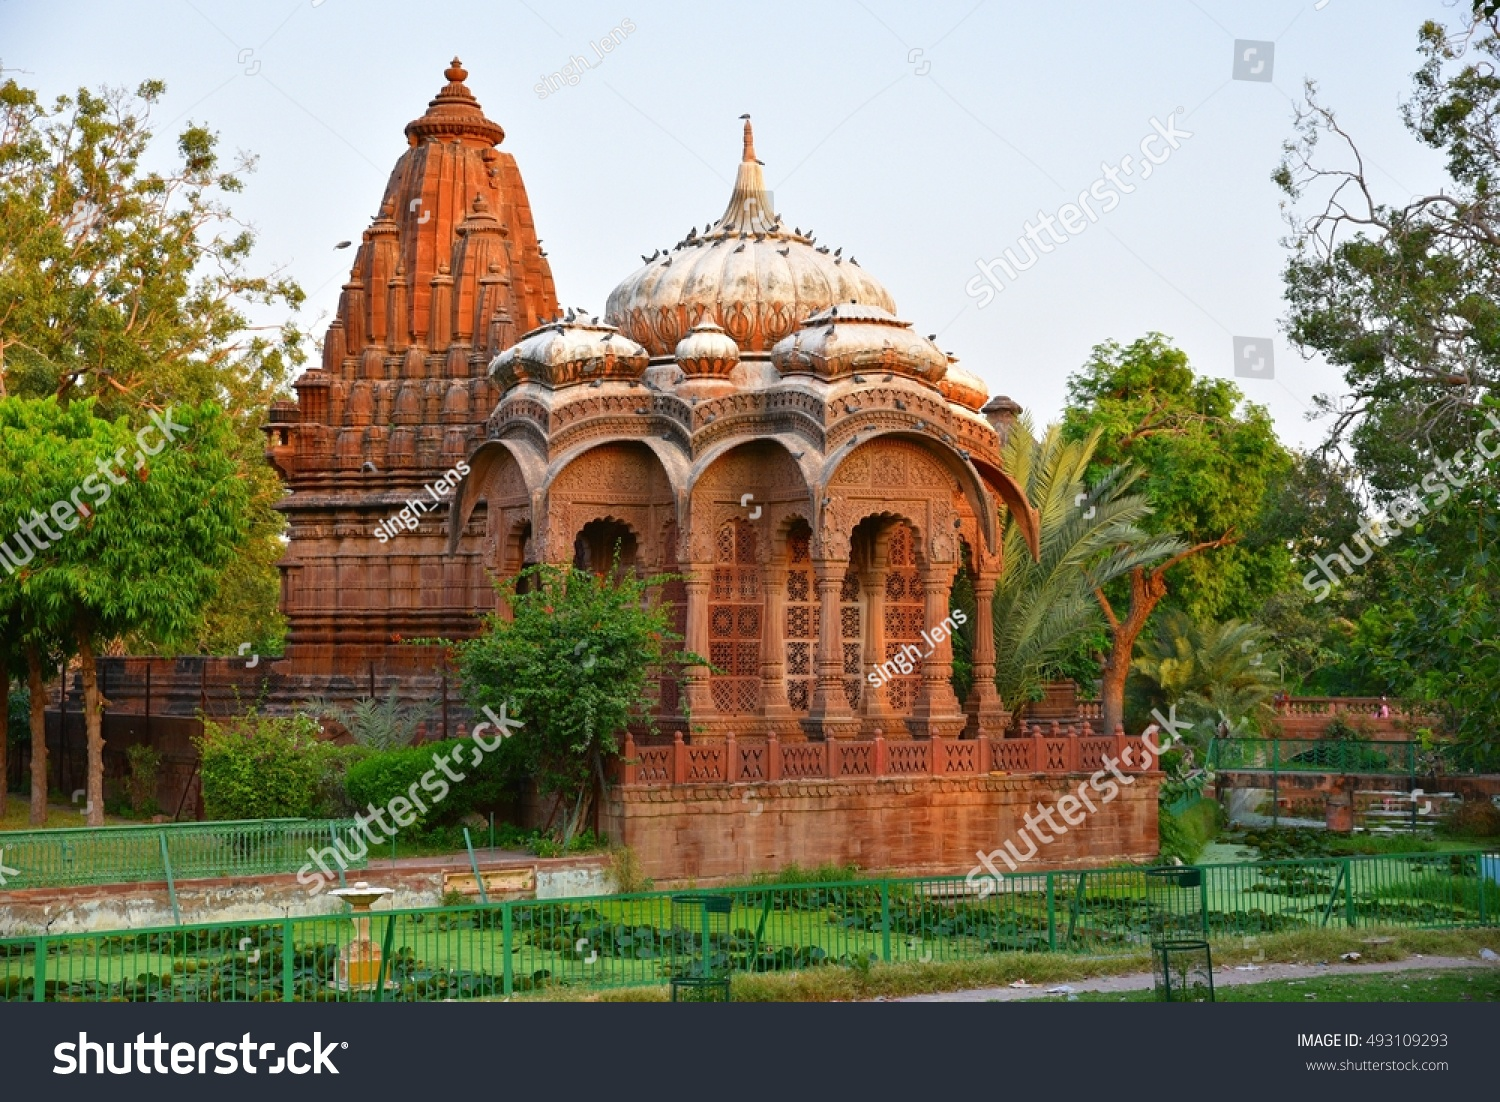 Vintage Ancient Rock Curved Temples Hindu Stock Photo (Edit Now ...